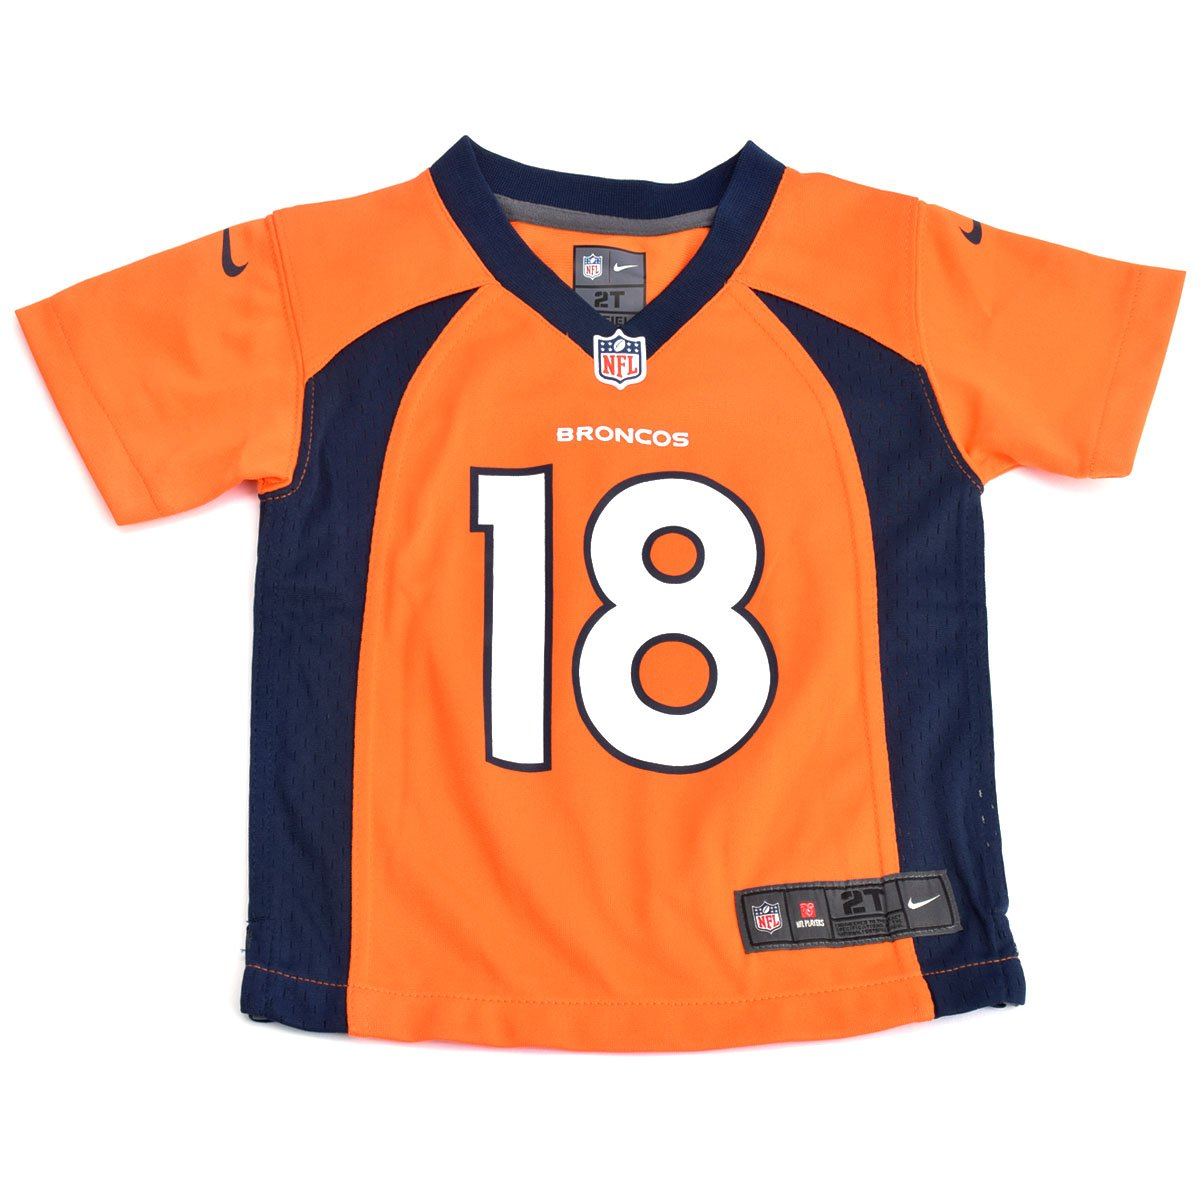 pretty nice 0722d 9df81 Outerstuff Denver Broncos NFL Youth Boys Peyton Manning #18 Jersey, Orange